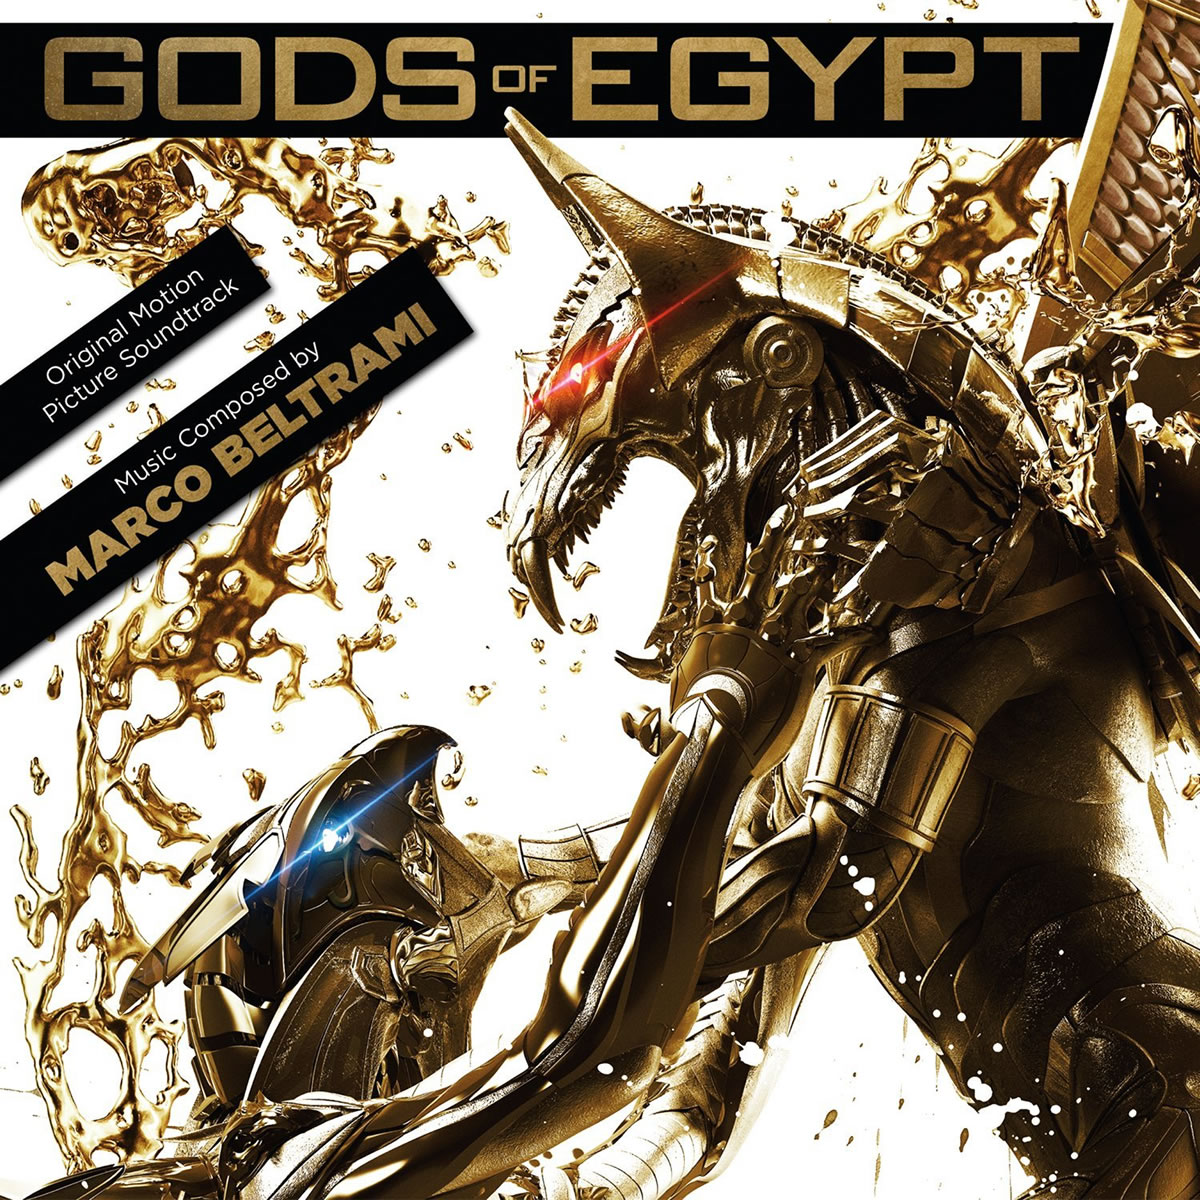 GODS OF EGYPT - THE ORIGINAL MOTION PICTURE SOUNDTRACK (AUDIO CD)